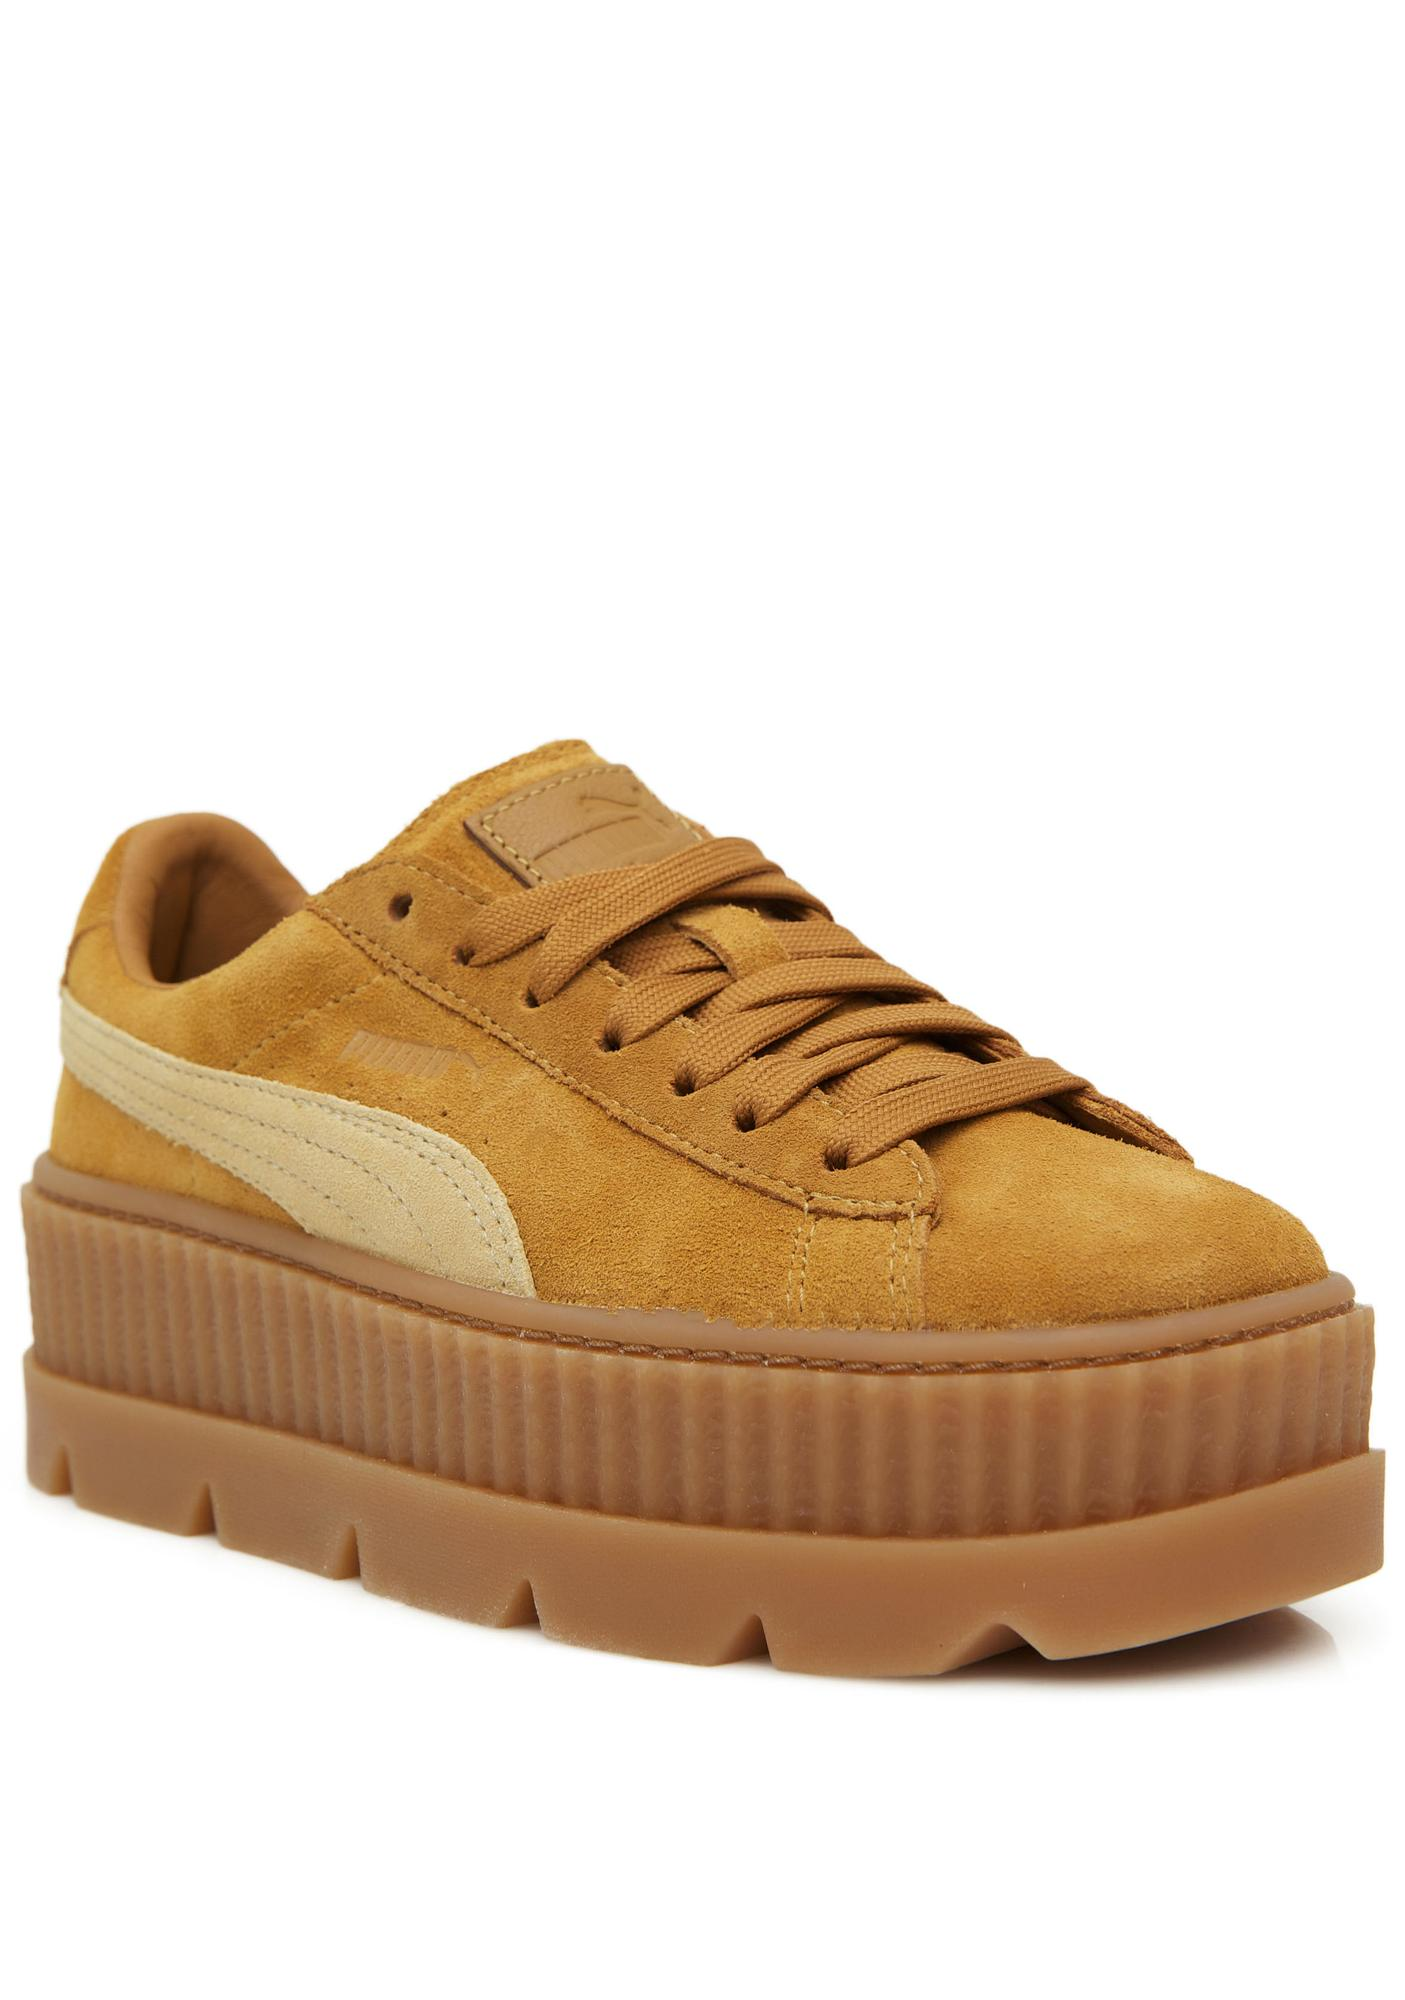 pretty nice 43e32 fd843 FENTY PUMA by Rihanna Cleated Suede Creepers